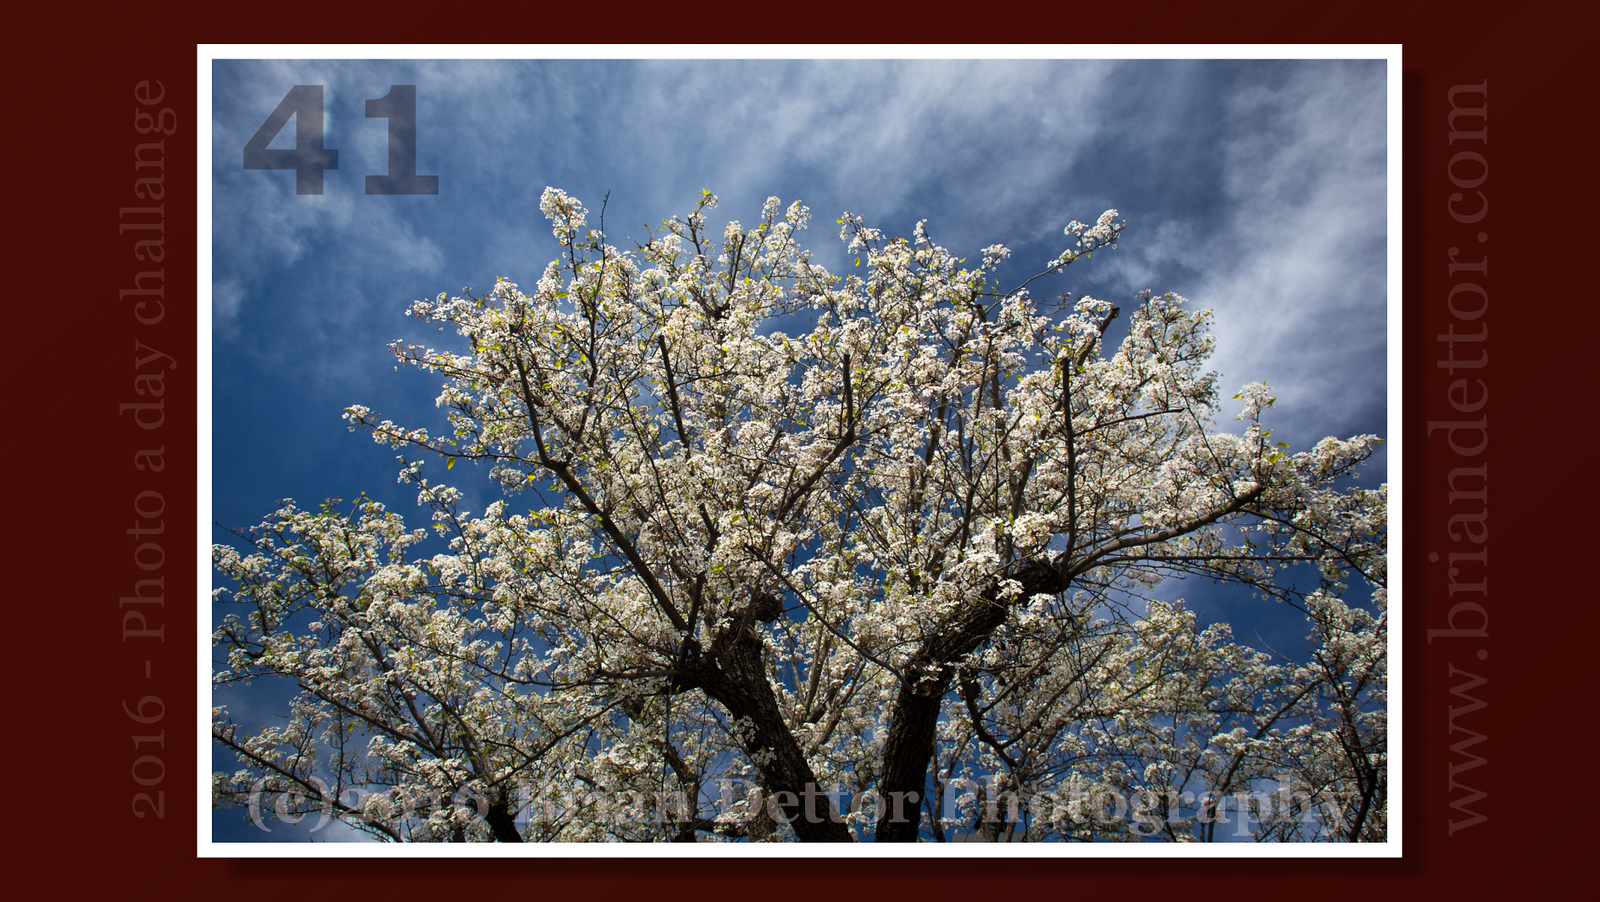 Day #41 - Spring Blossoms